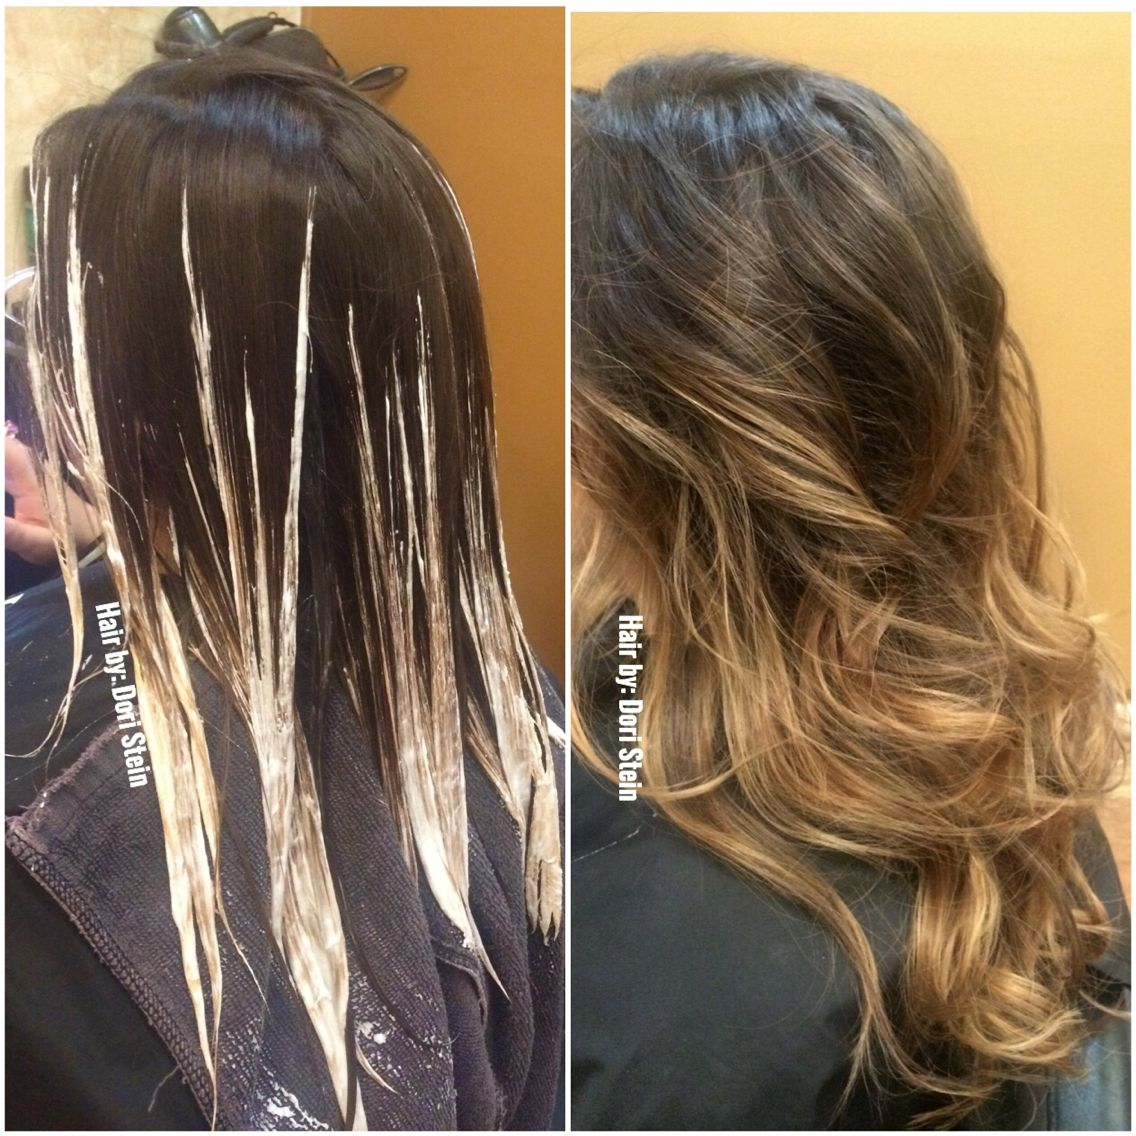 Balayage Hairstyle Balayage Hairbalayage Hair Applicationbalayage Hair Color With